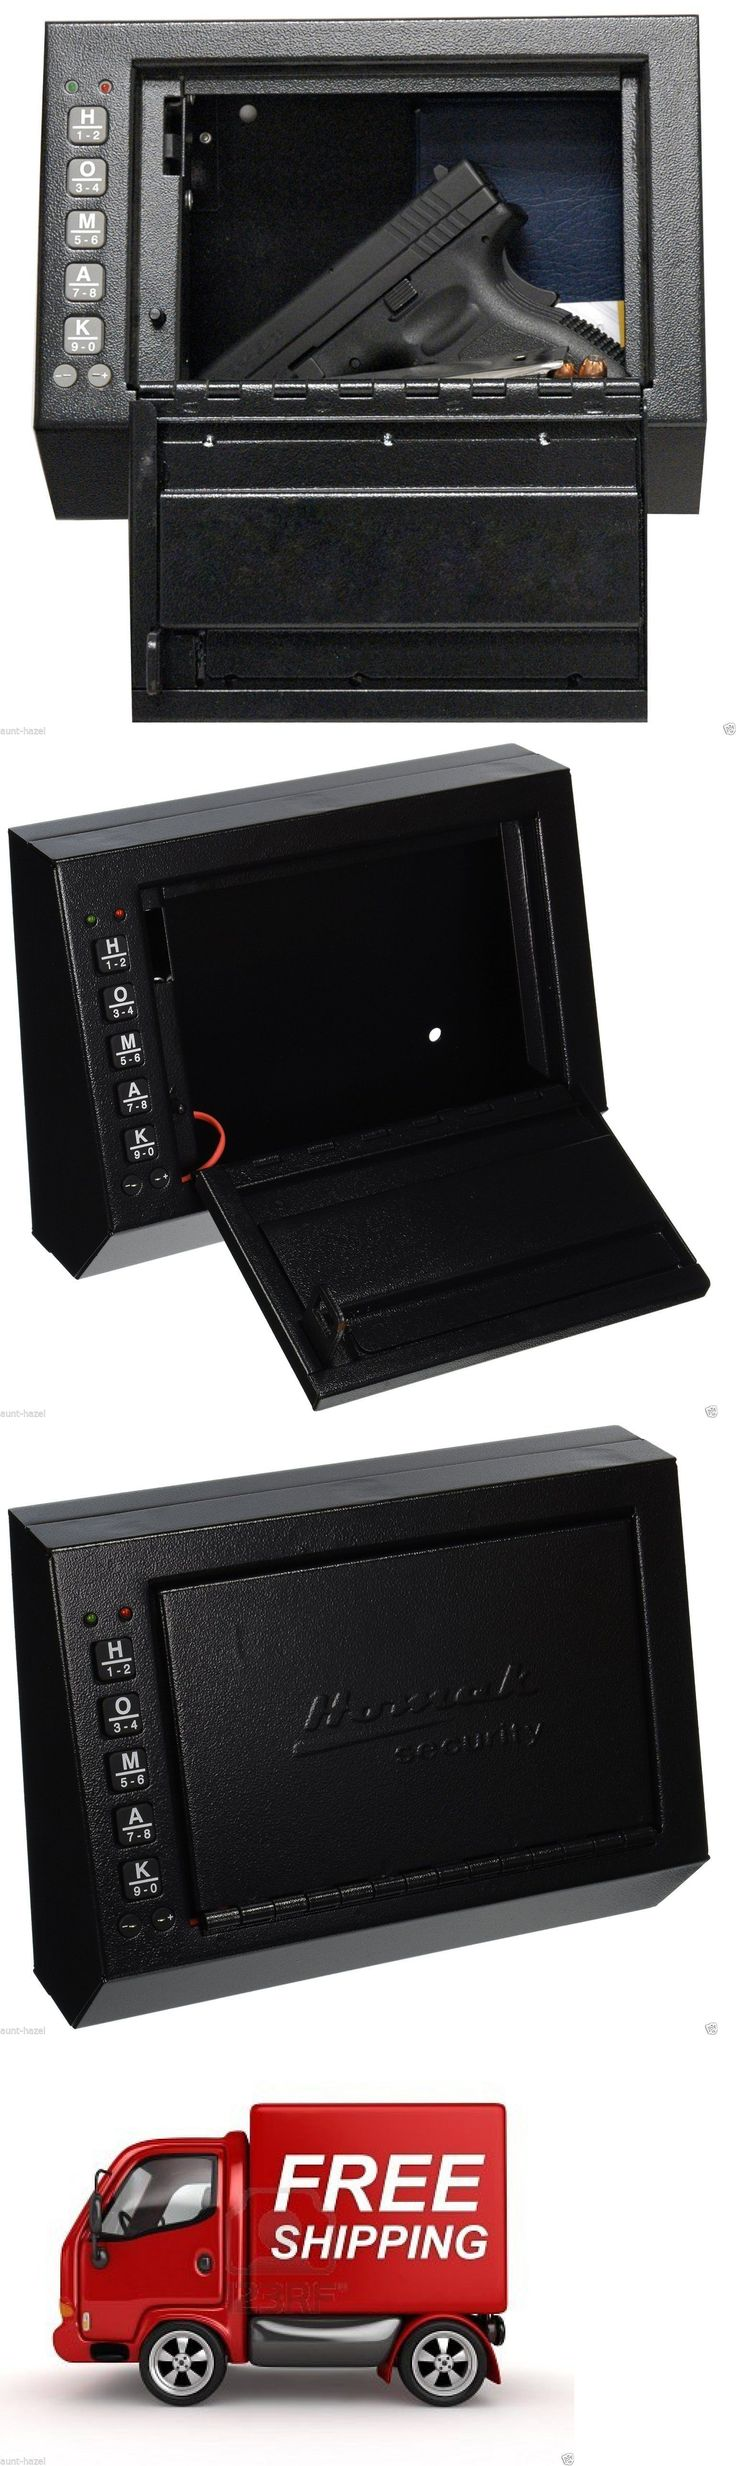 Cabinets and Safes 177877: Electronic Pistol Box Handgun Safe Cabinet Lock Gun Security Vault Wall Mount BUY IT NOW ONLY: $51.89